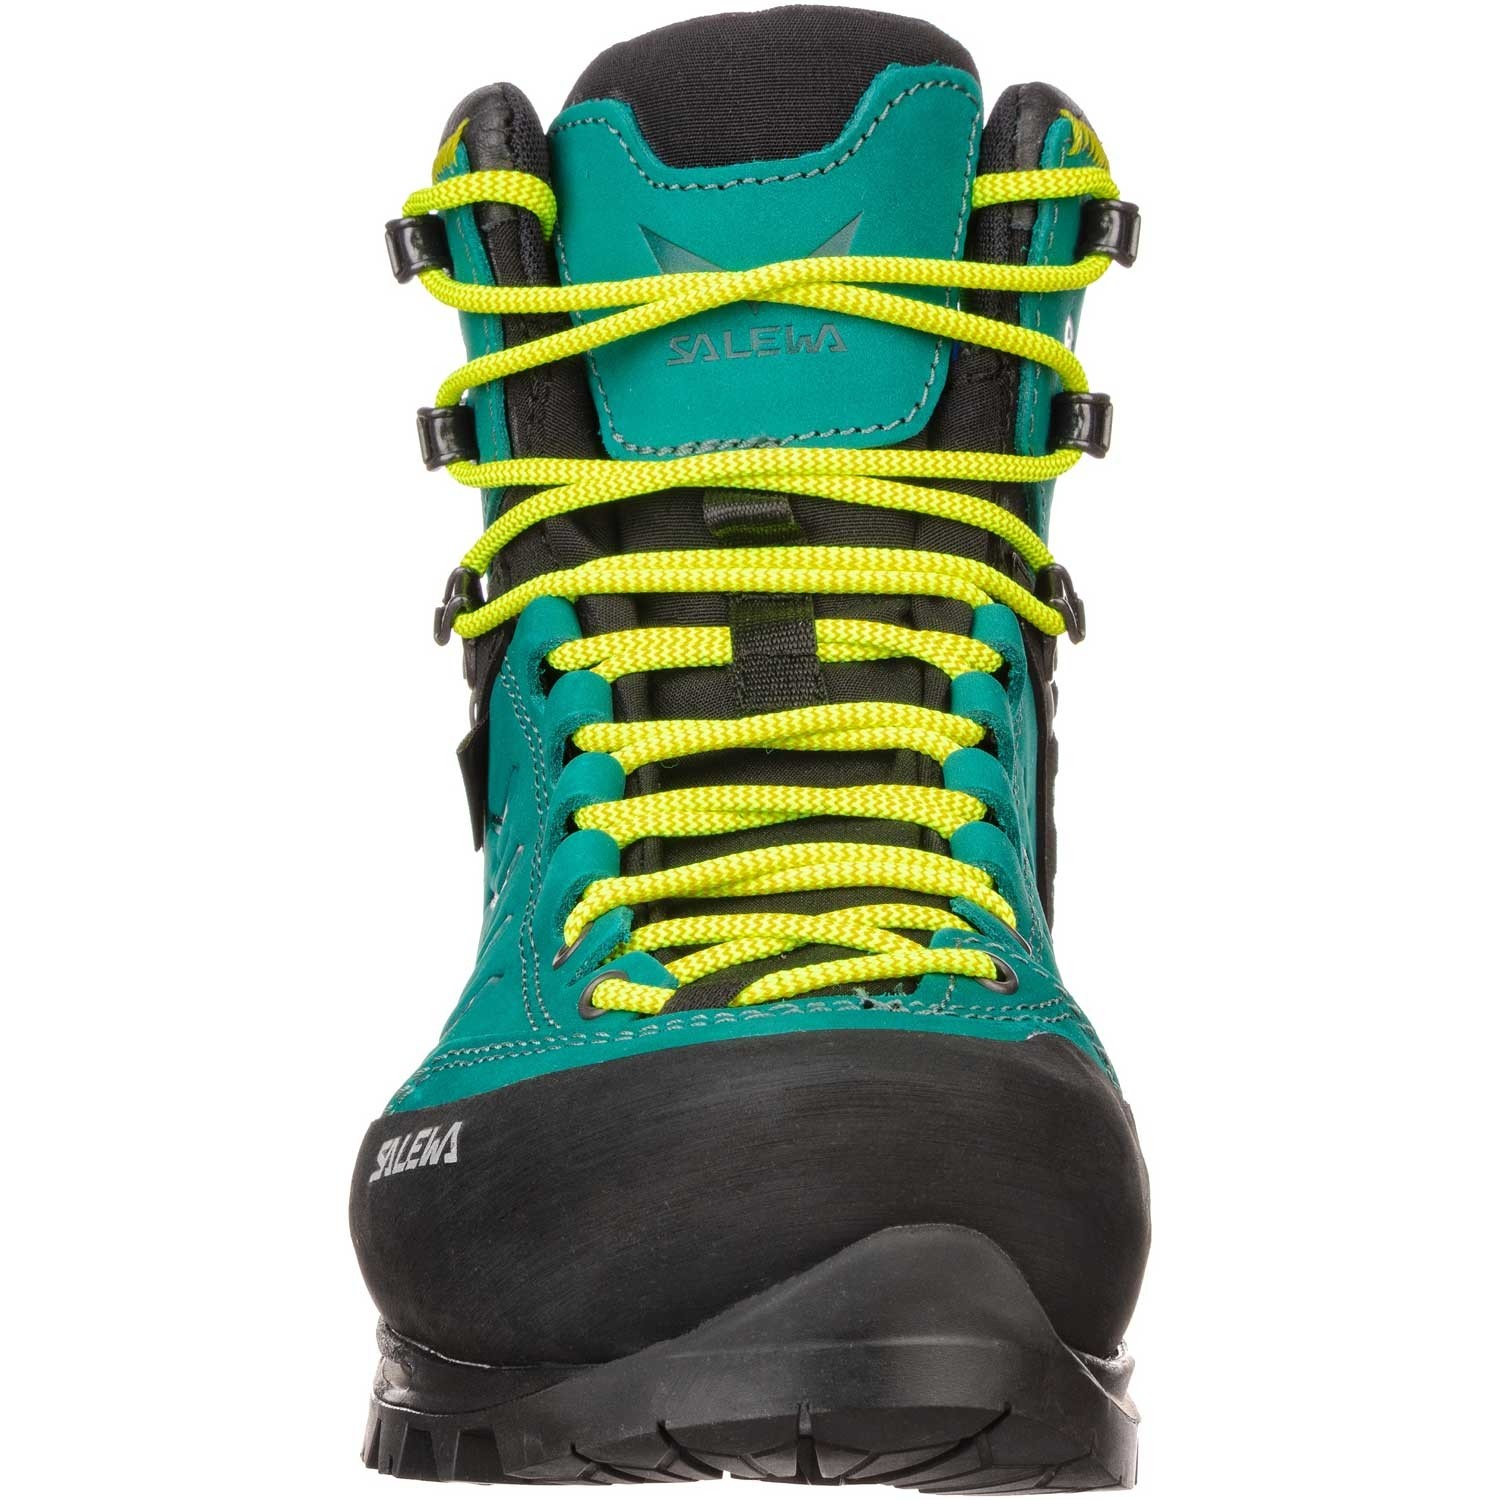 Salewa Rapace GTX Mountaineering Boots - Women's - Shaded Spruce/Sulphur Spring